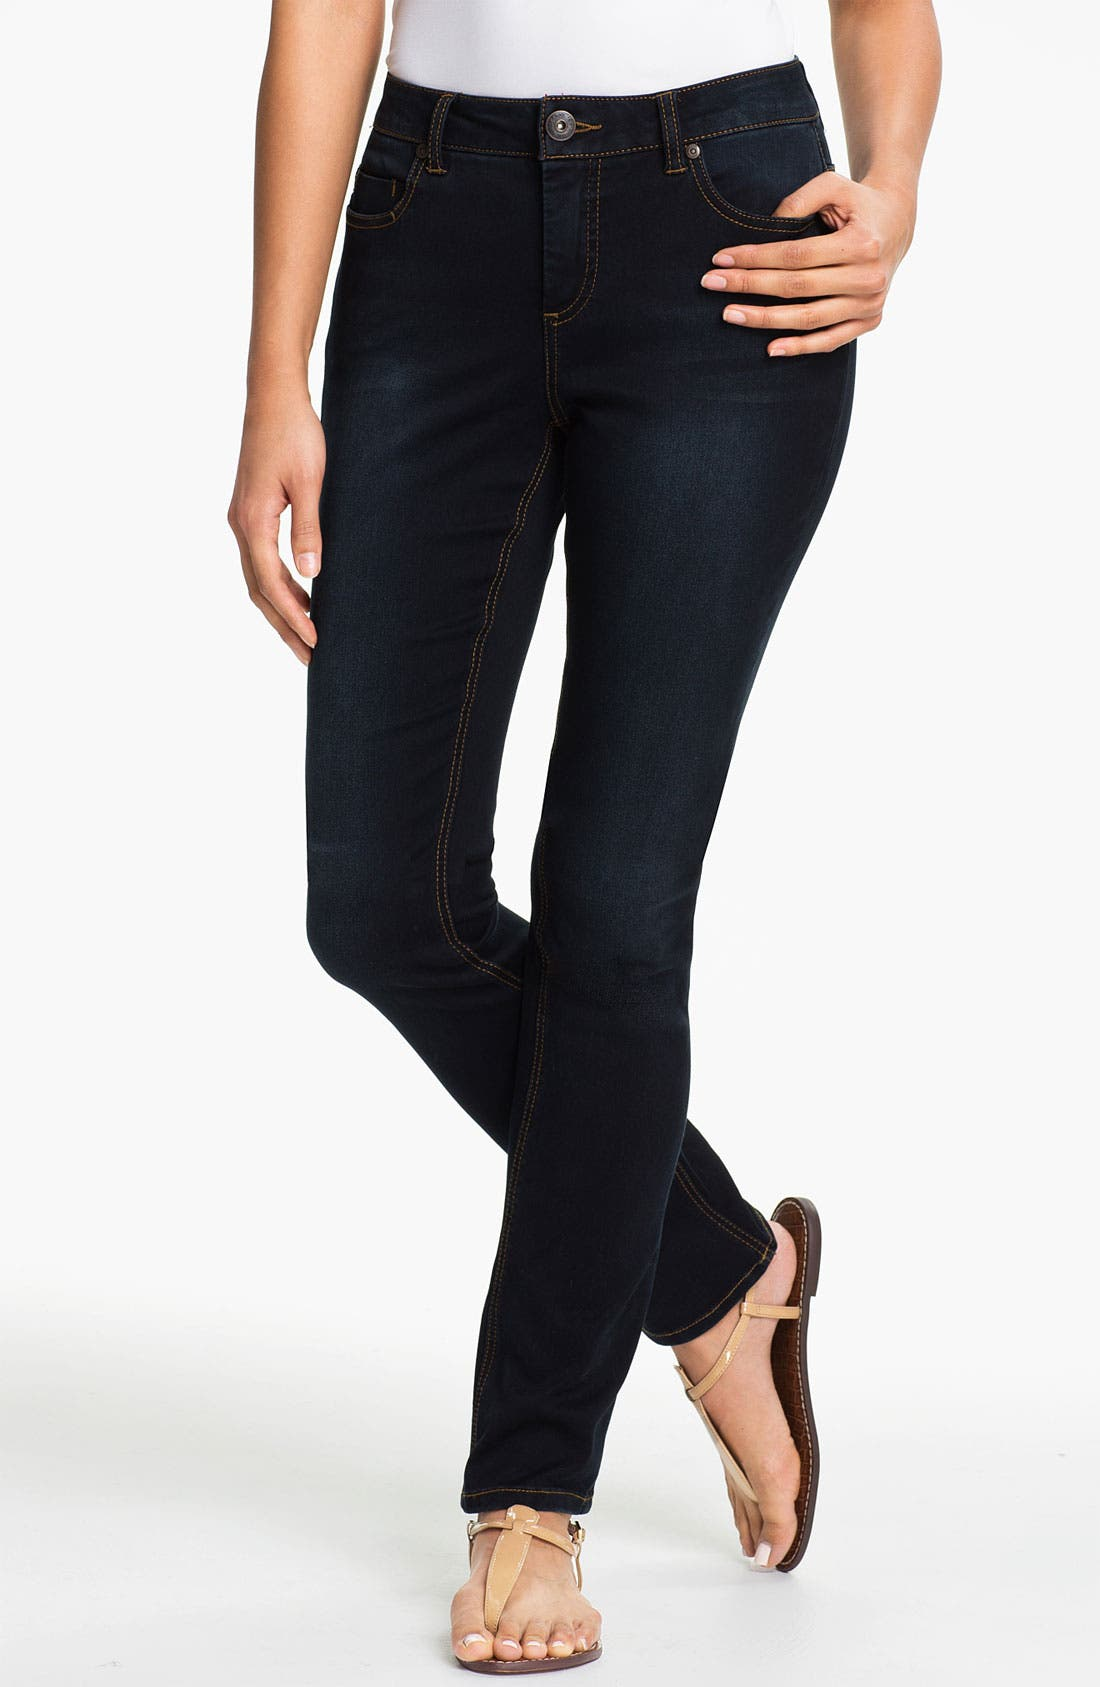 Alternate Image 1 Selected - Liverpool Jeans Company 'Sadie' Straight Leg Supersoft Stretch Jeans